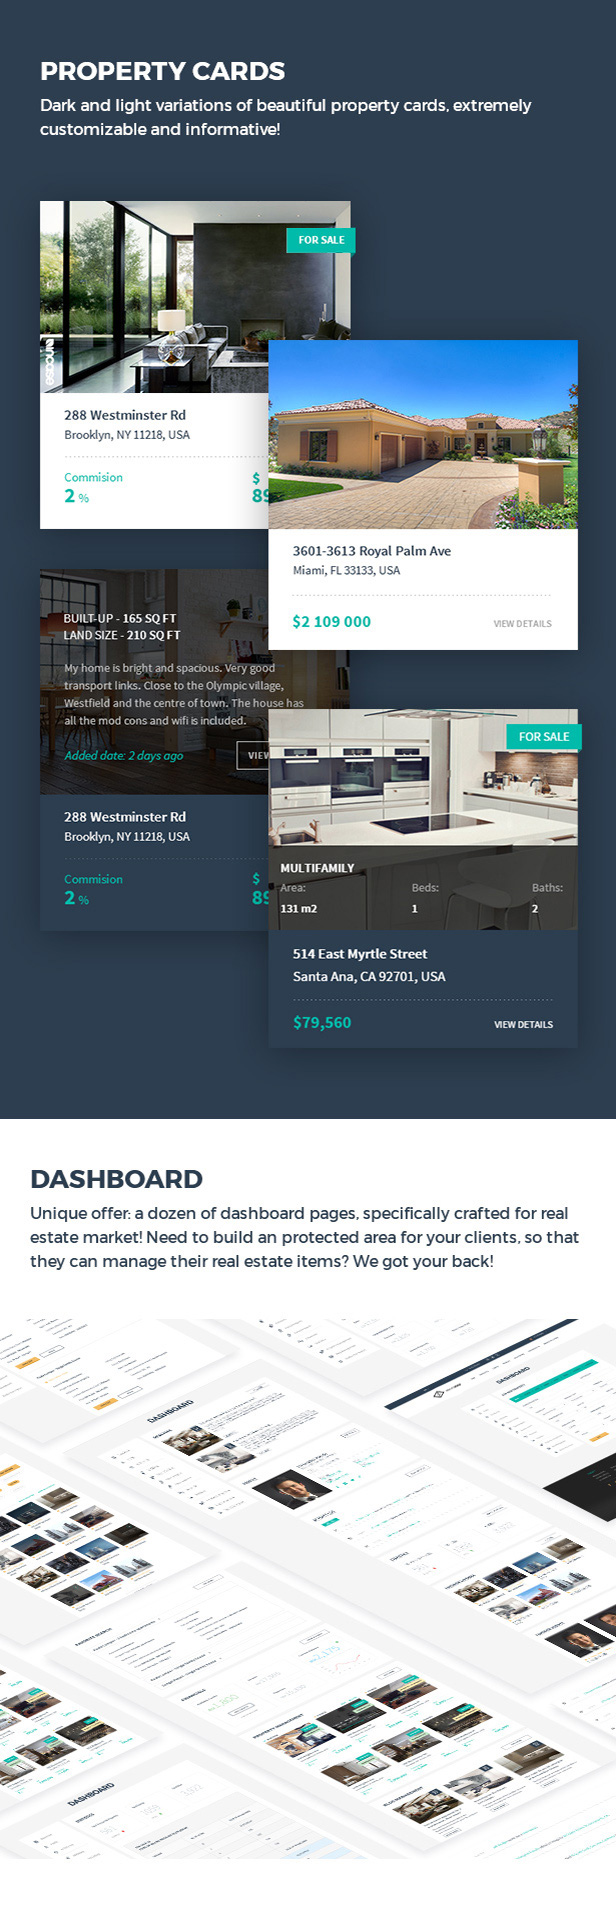 Realtyspace v2.1.2 - Real Estate HTML5 Template + Dashboard Included - 12